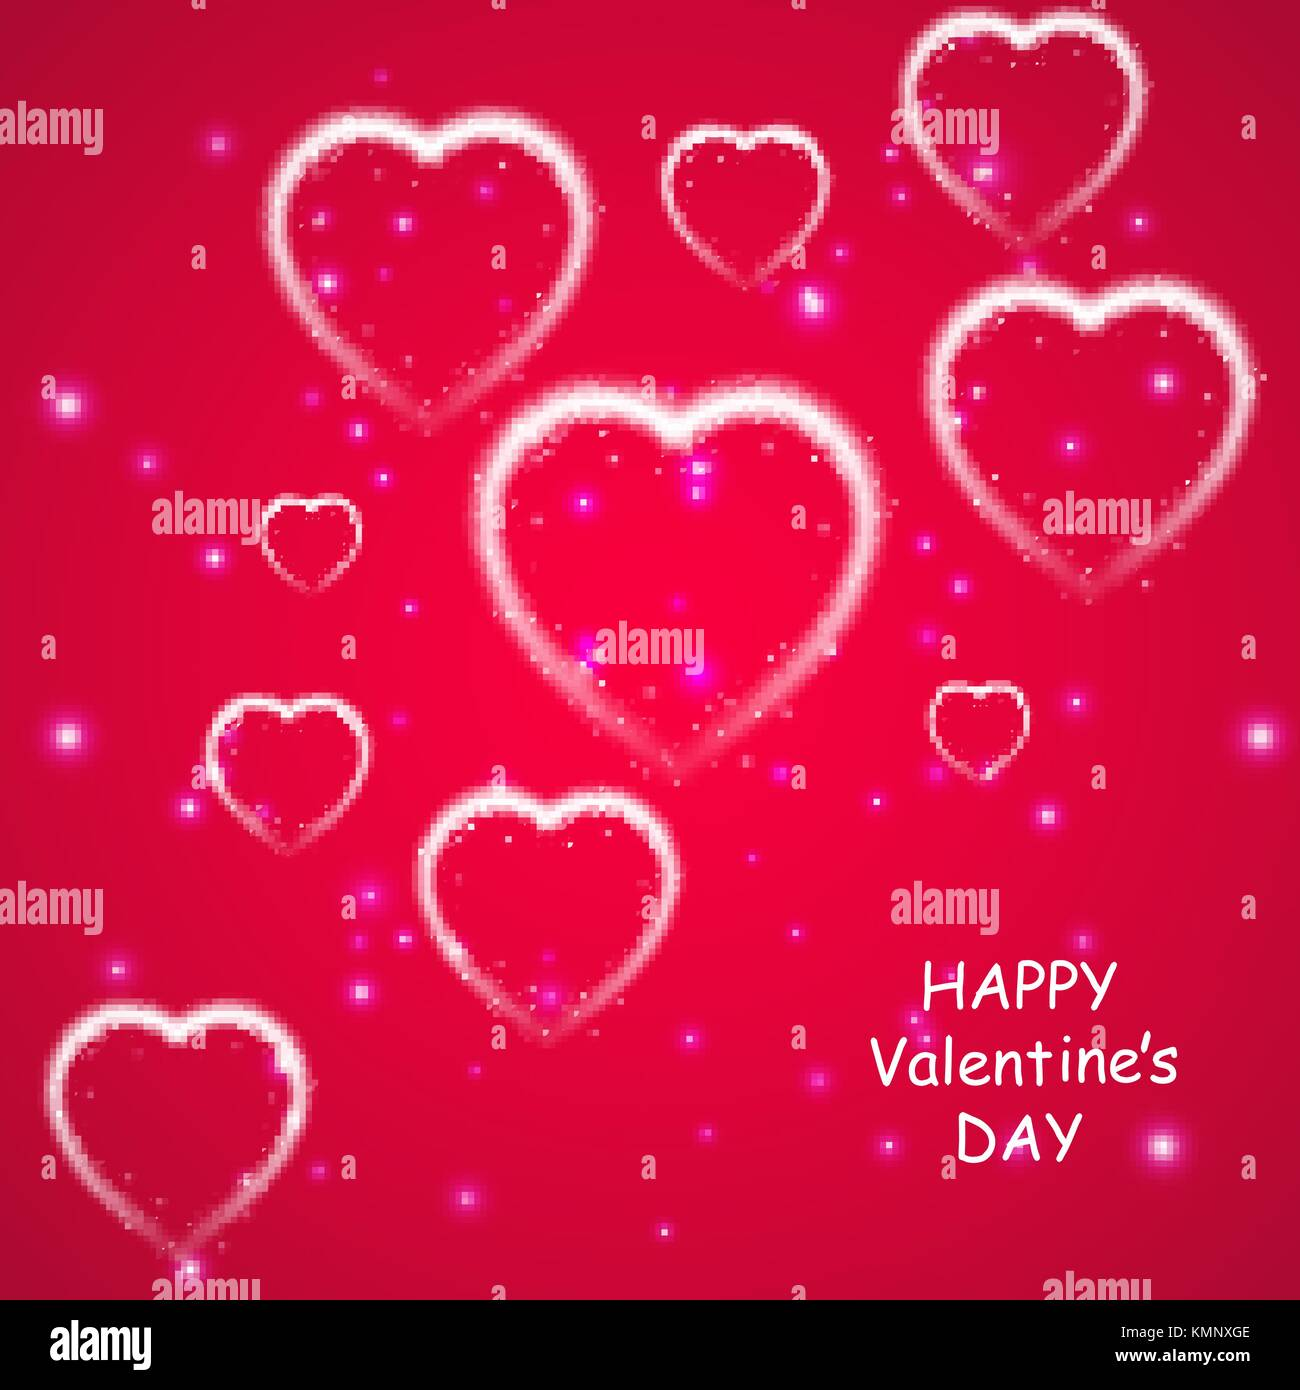 Happy valentines day greeting card i love you 14 february happy valentines day greeting card i love you 14 february holiday background with falling hearts with arrow light stars on pink background kristyandbryce Image collections